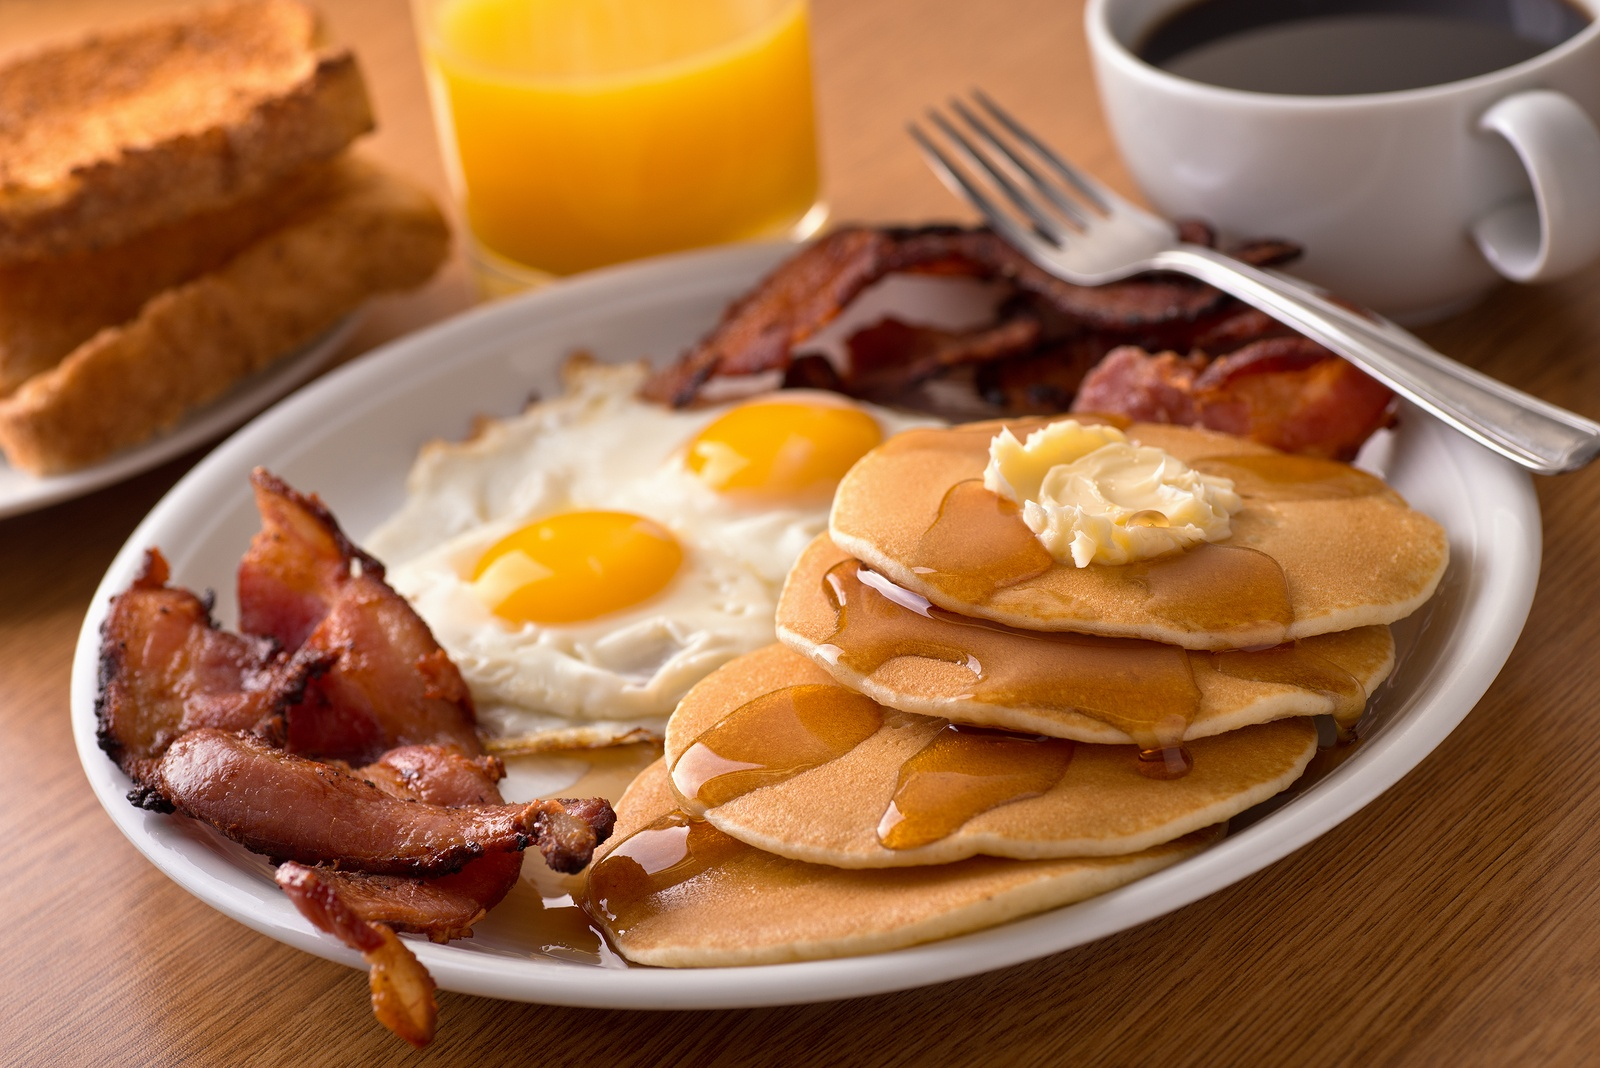 bigstock-Breakfast-With-Bacon-Eggs-Pa-80641280.jpg